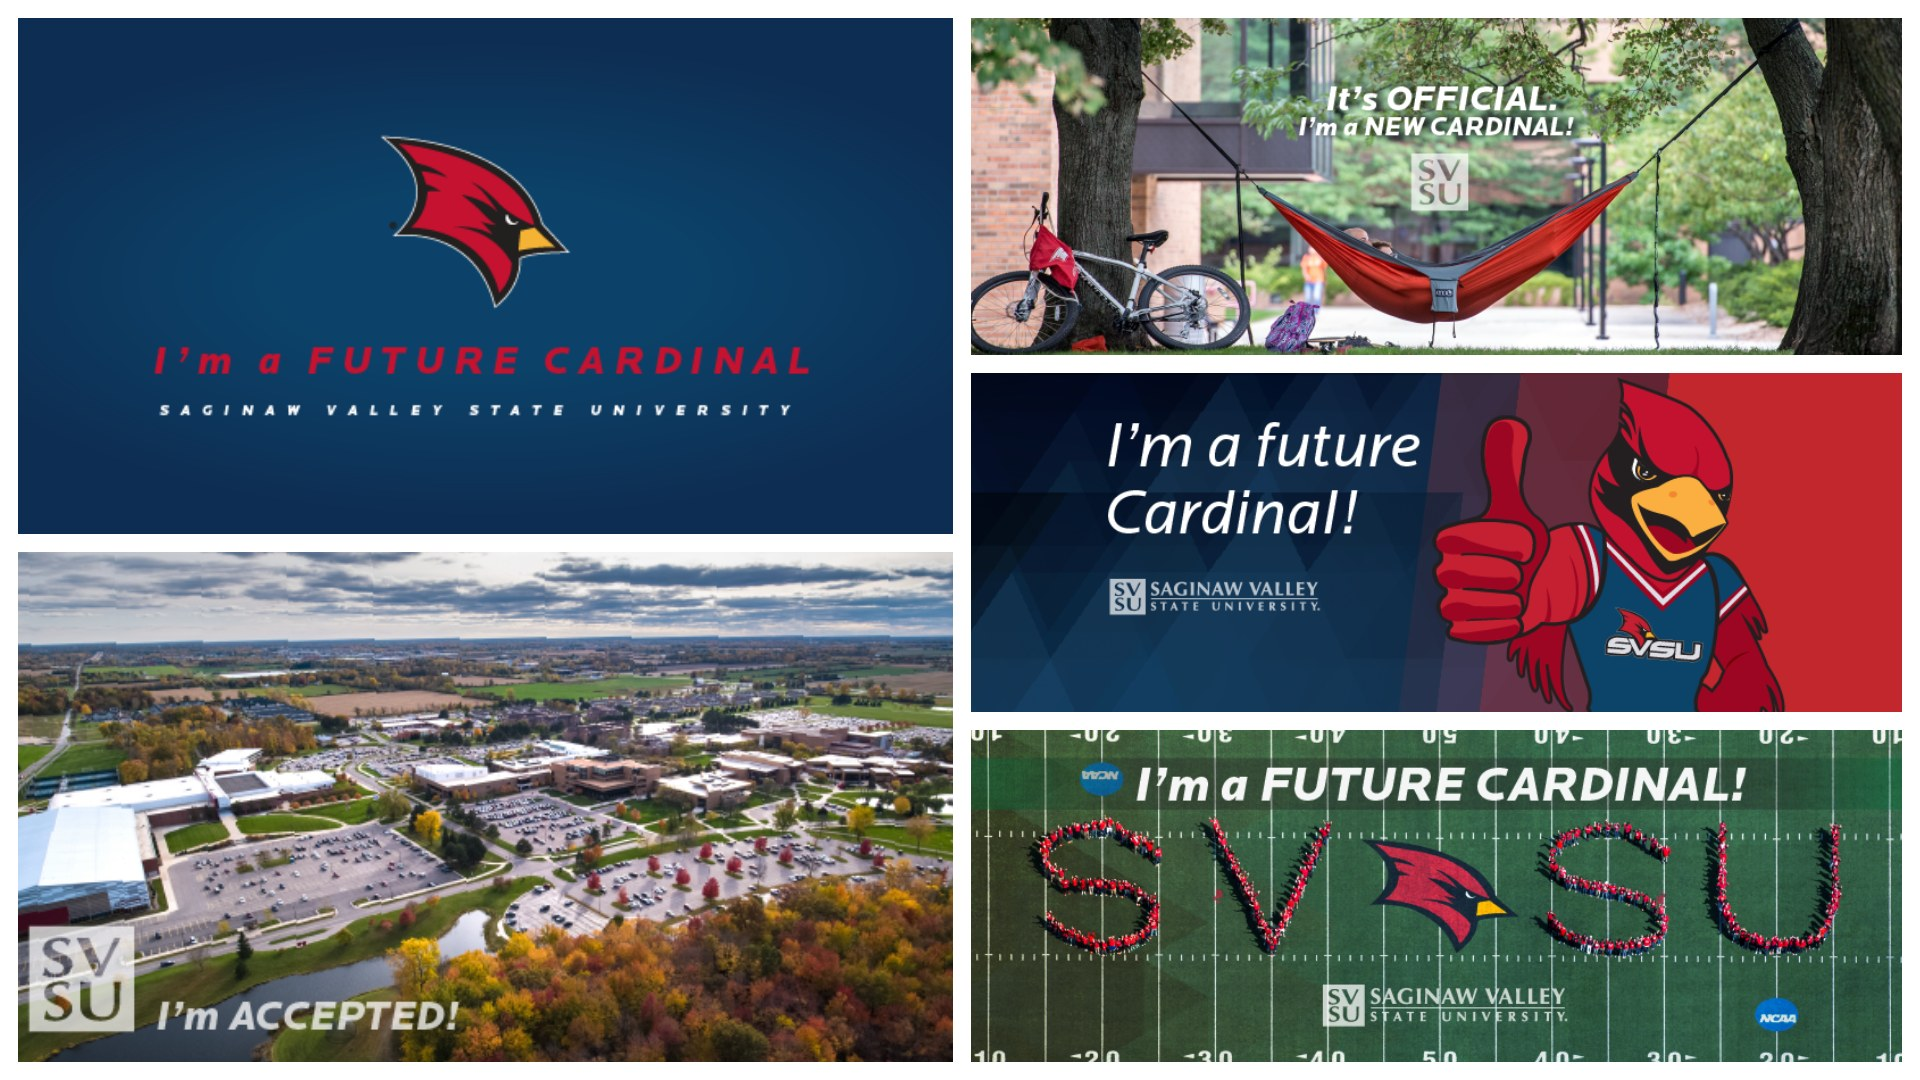 Examples of admitted student cover images for social media